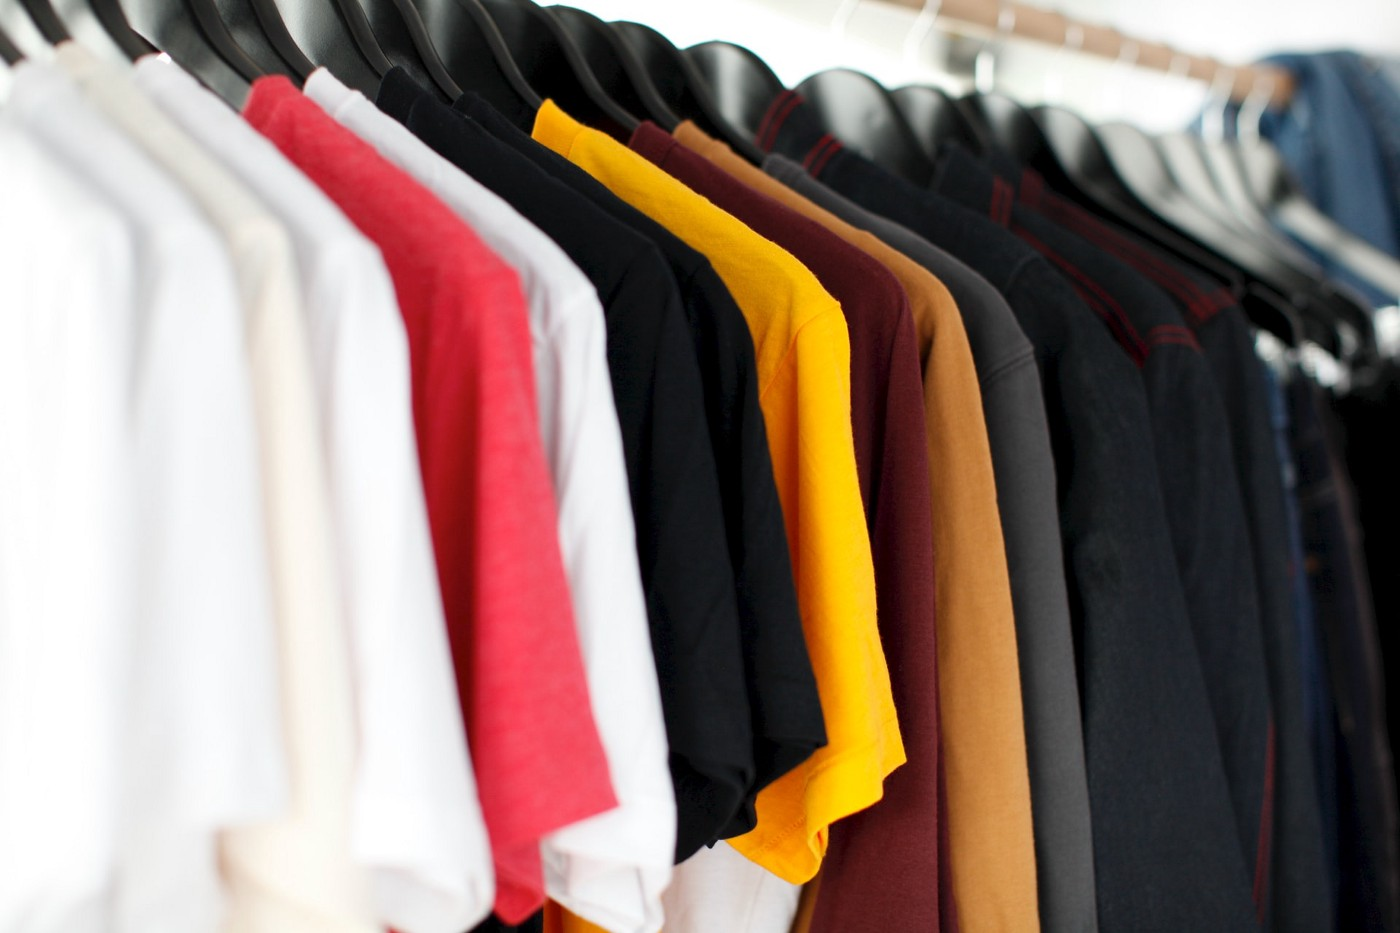 Different colour T-shirts on hangers